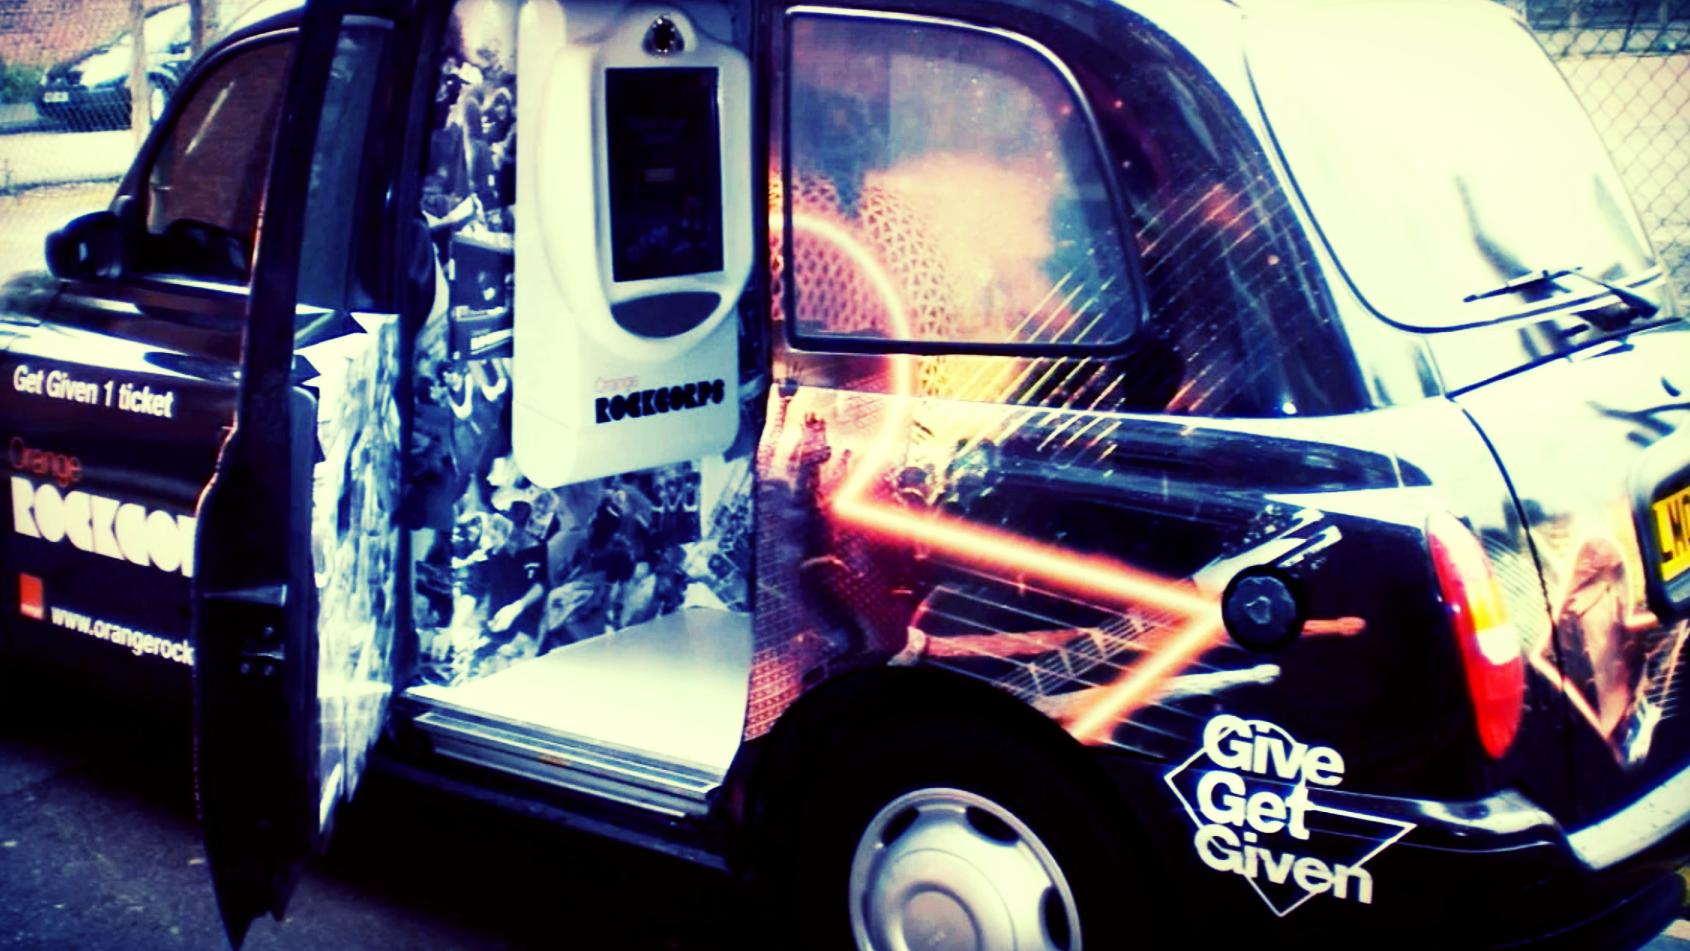 'Sound of Orange RockCorps' taxi – one part of an award winning brand activation